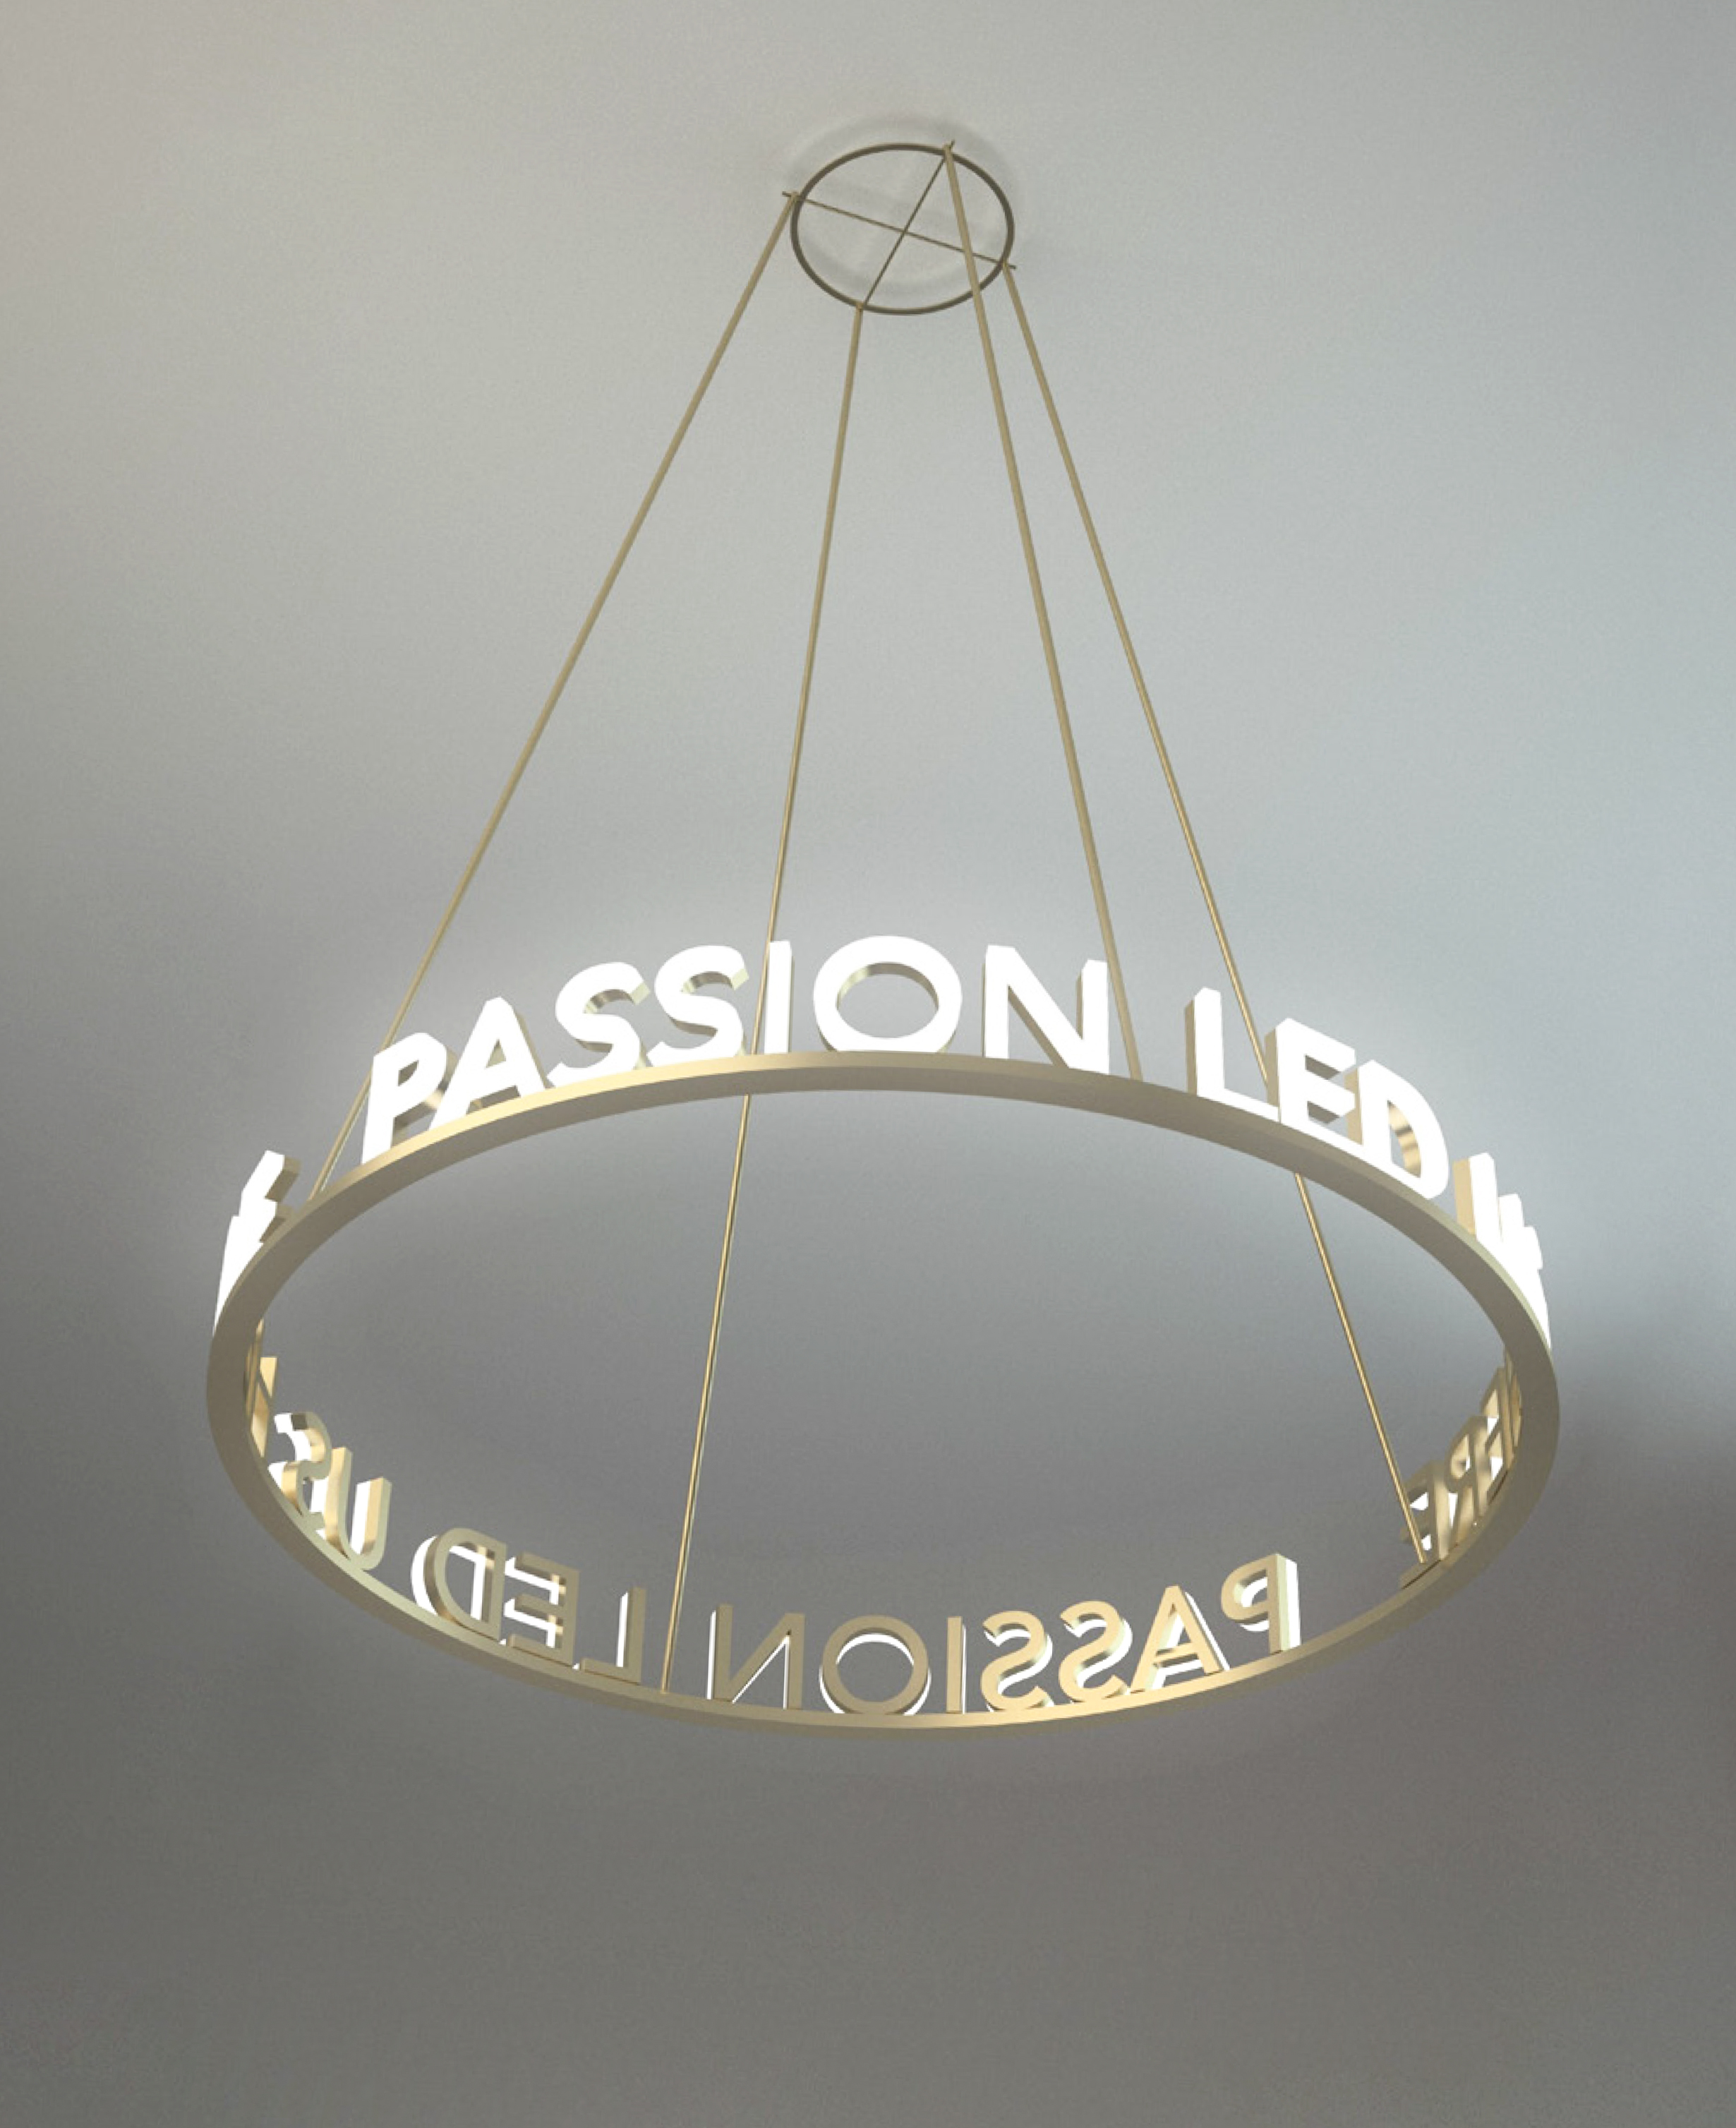 """Integrating types, """" PASSION LED US HERE """" to the pendant light"""